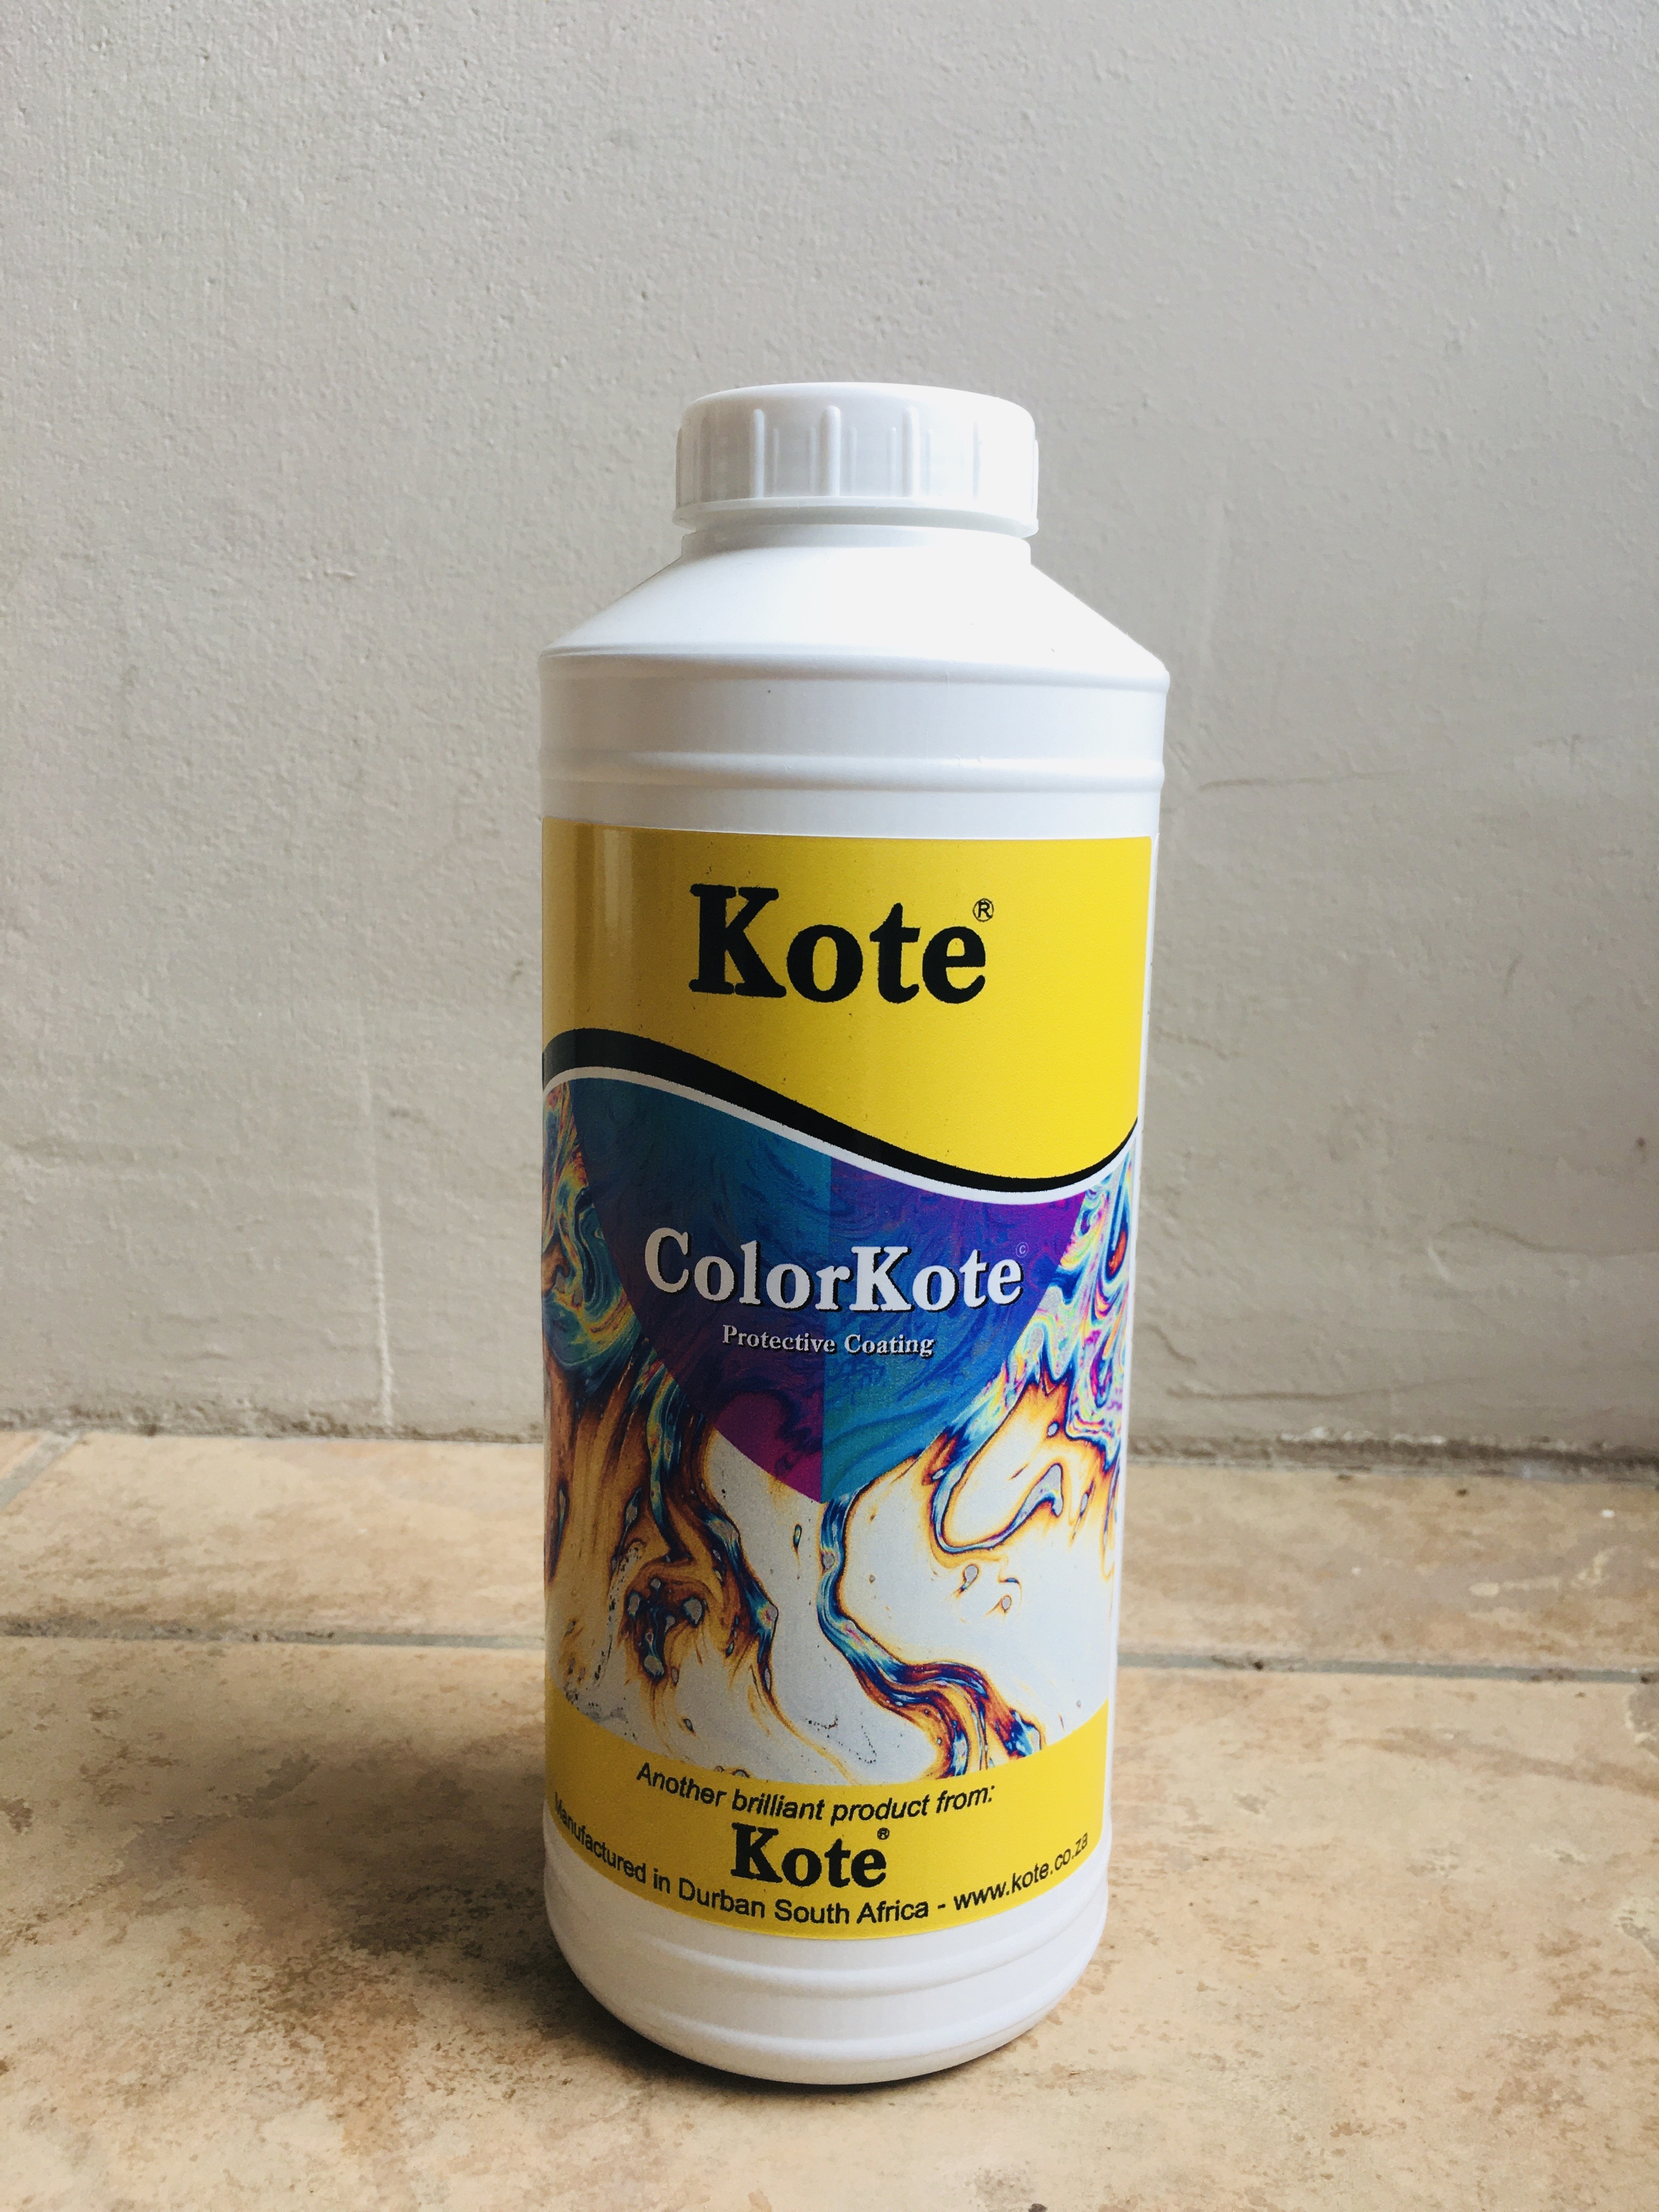 ColorKote - Tinted Protective Coating - Durban - South Africa